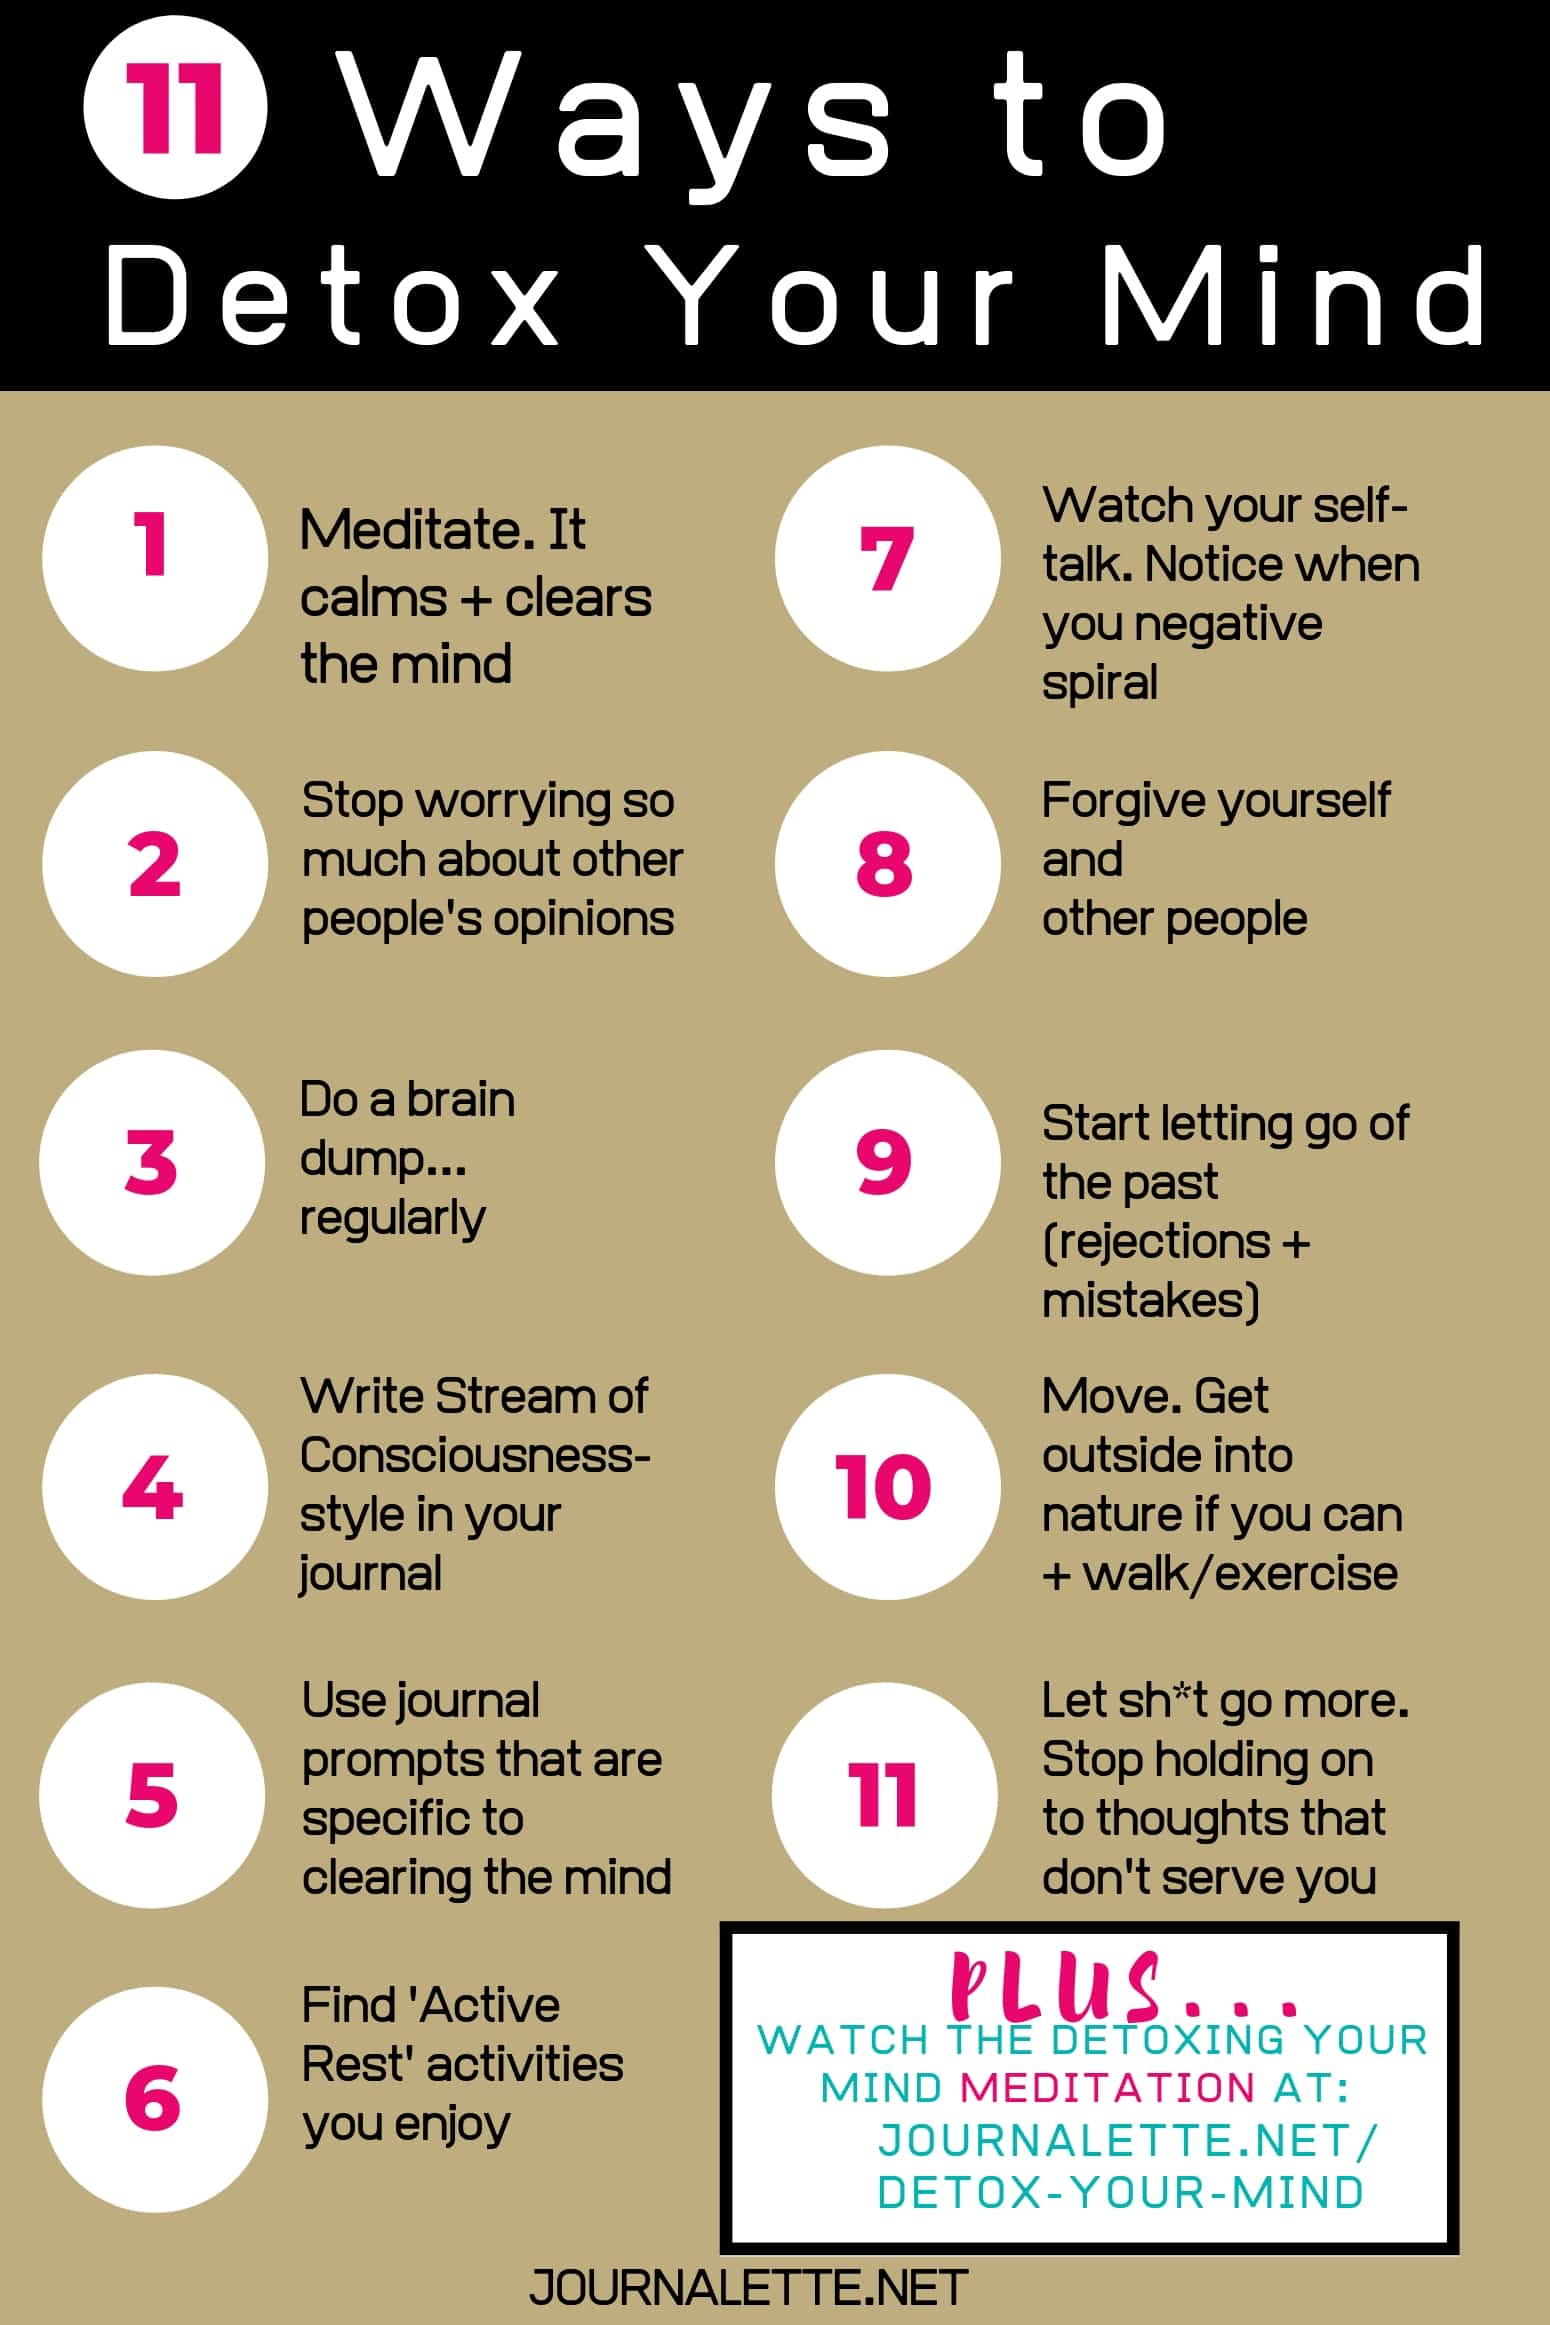 infographic image of 11 ways to detox your mind